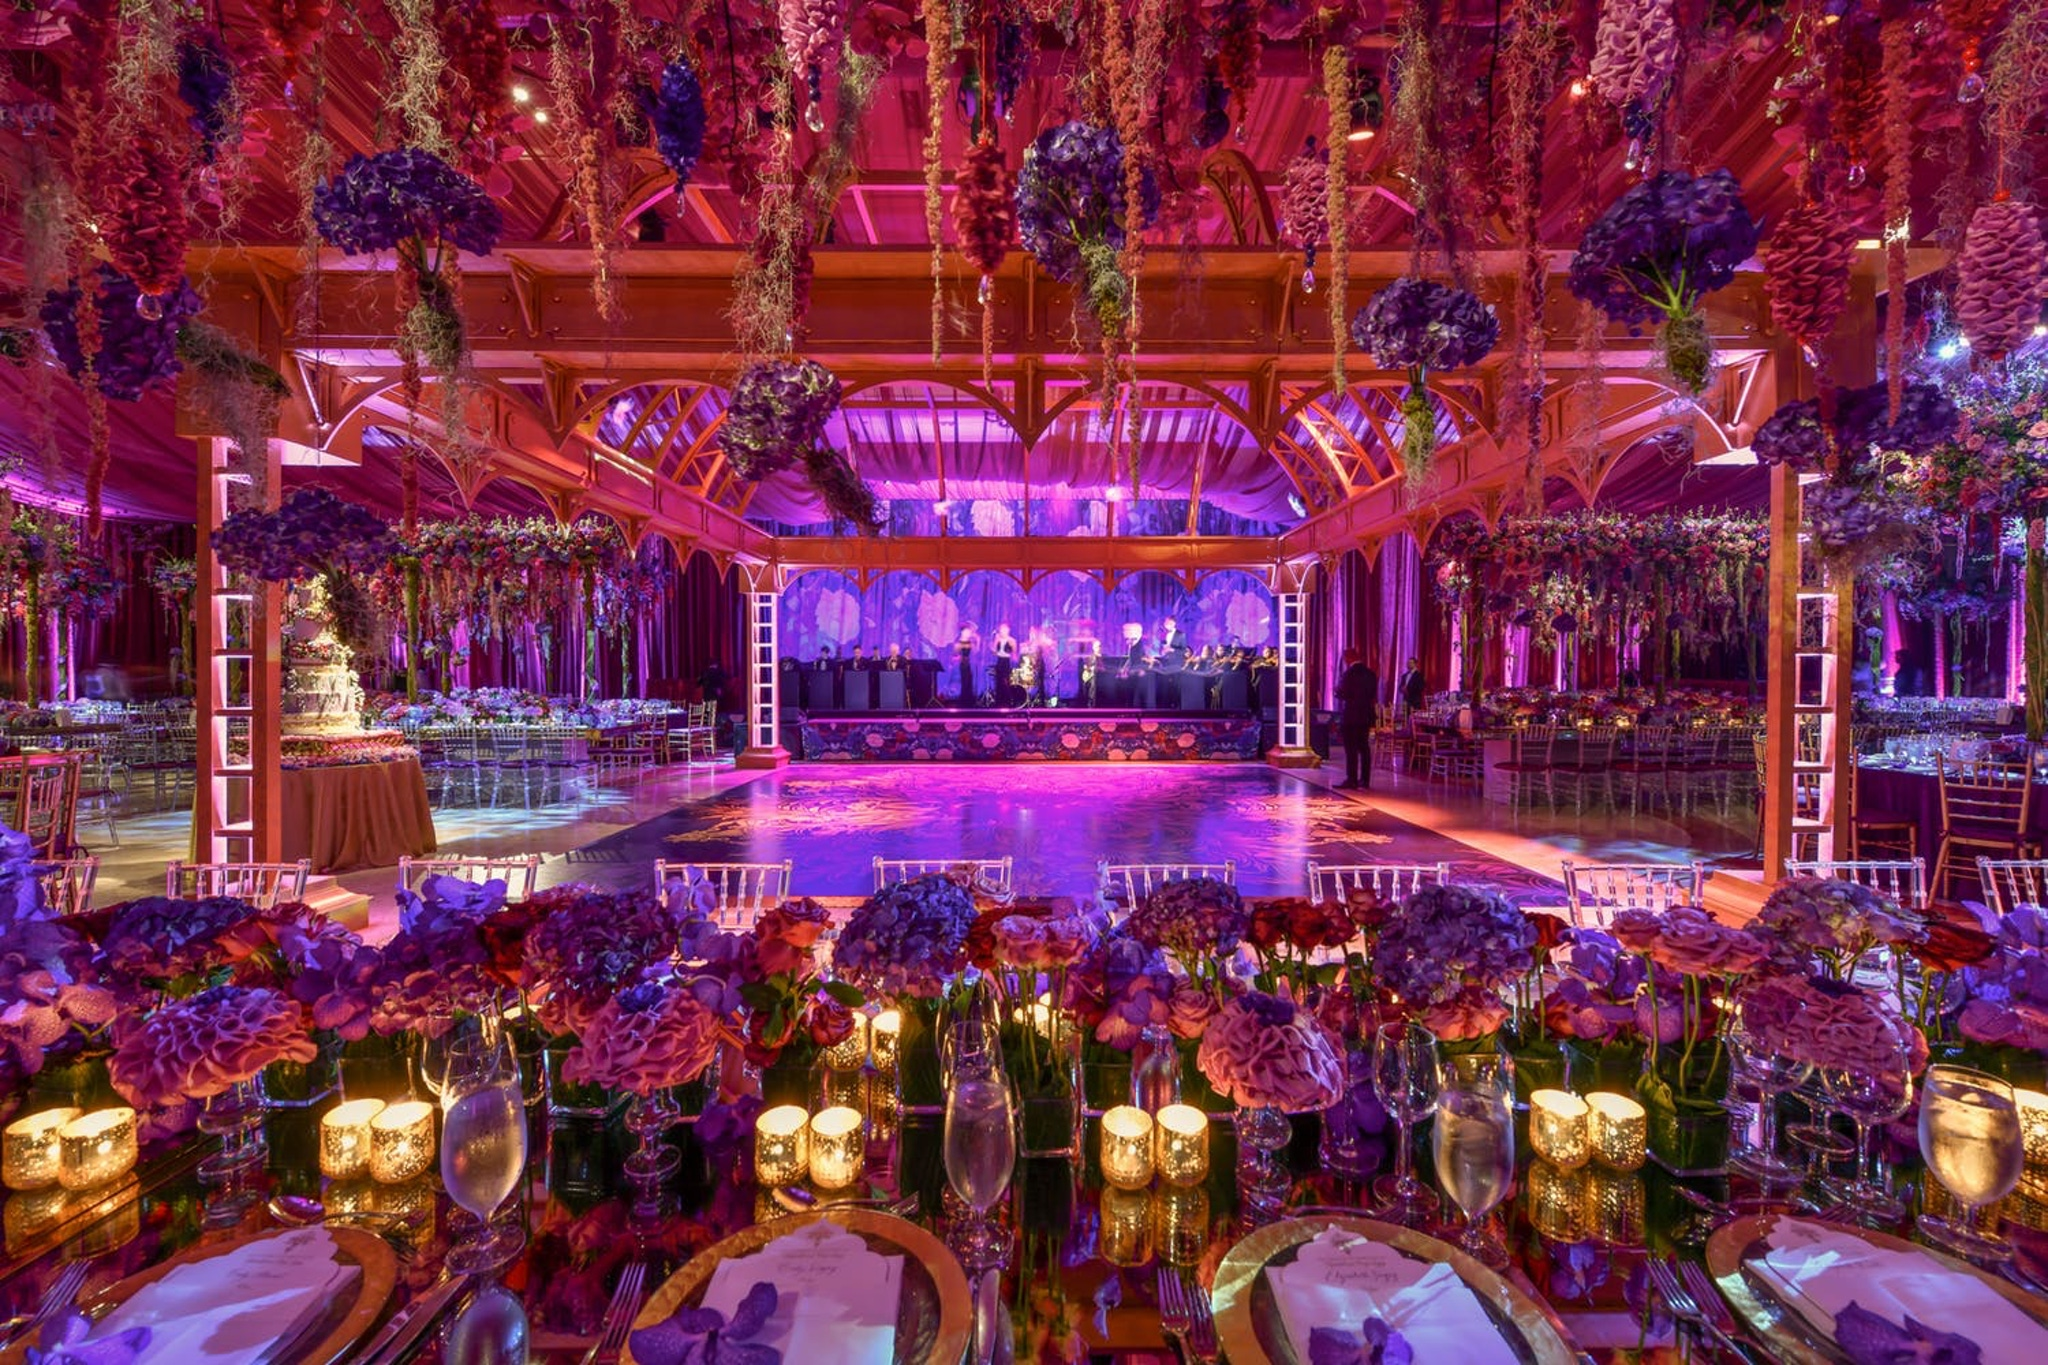 Pink, blue, and purple wedding decor accents and large dance floor at The Breakers